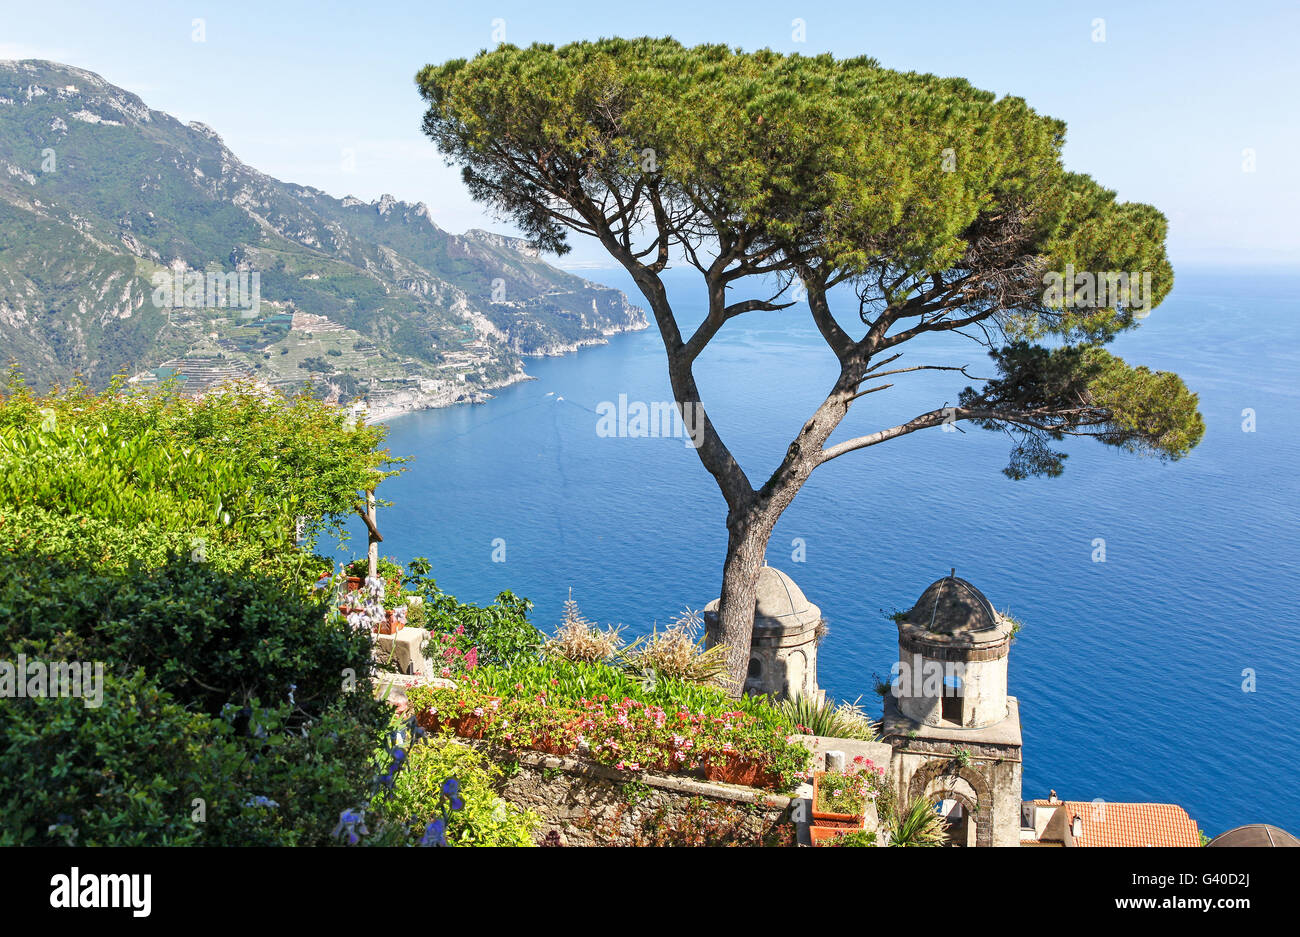 A view of the Amalfi Coast from the formal gardens garden at Villa Rufolo Ravello  Amalfi Coast Italy Europe - Stock Image